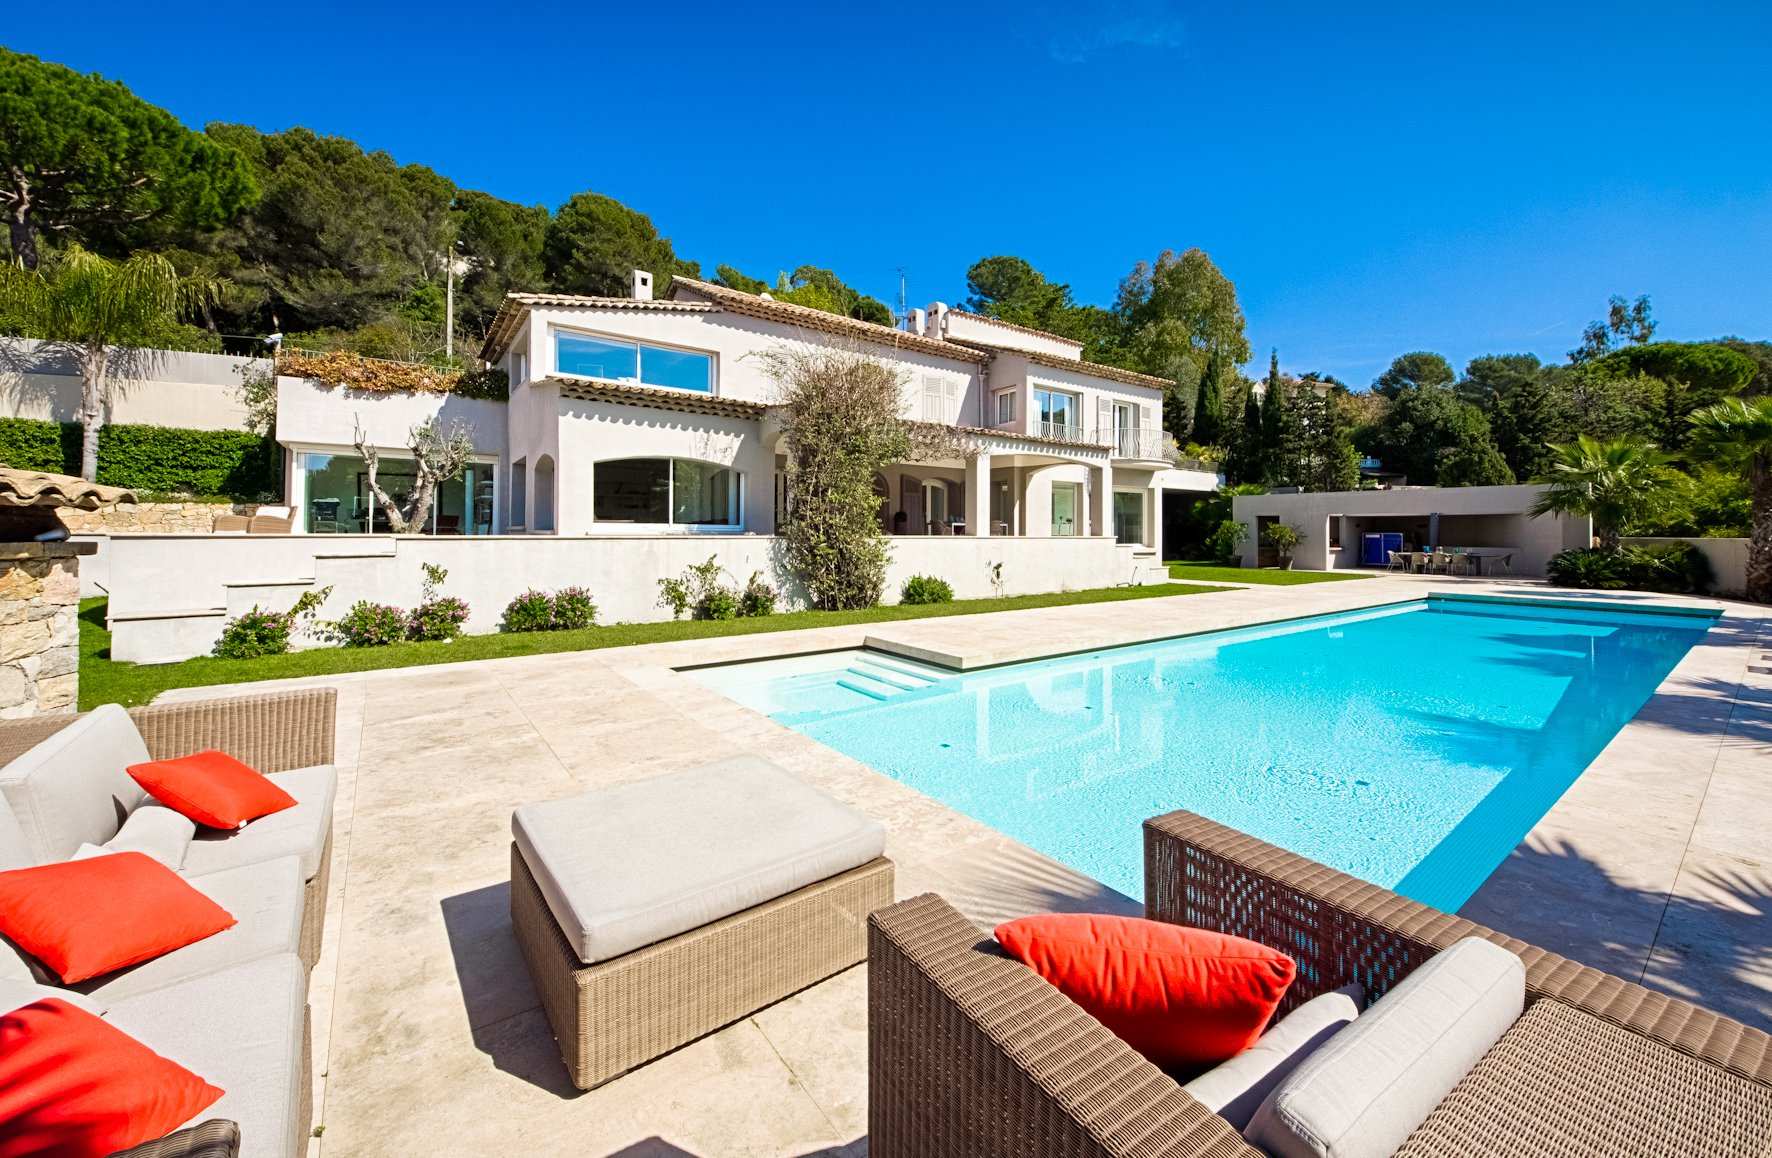 CANNES CALIFORNIE - DELIGHTFUL PROPERTY OF 400 M²